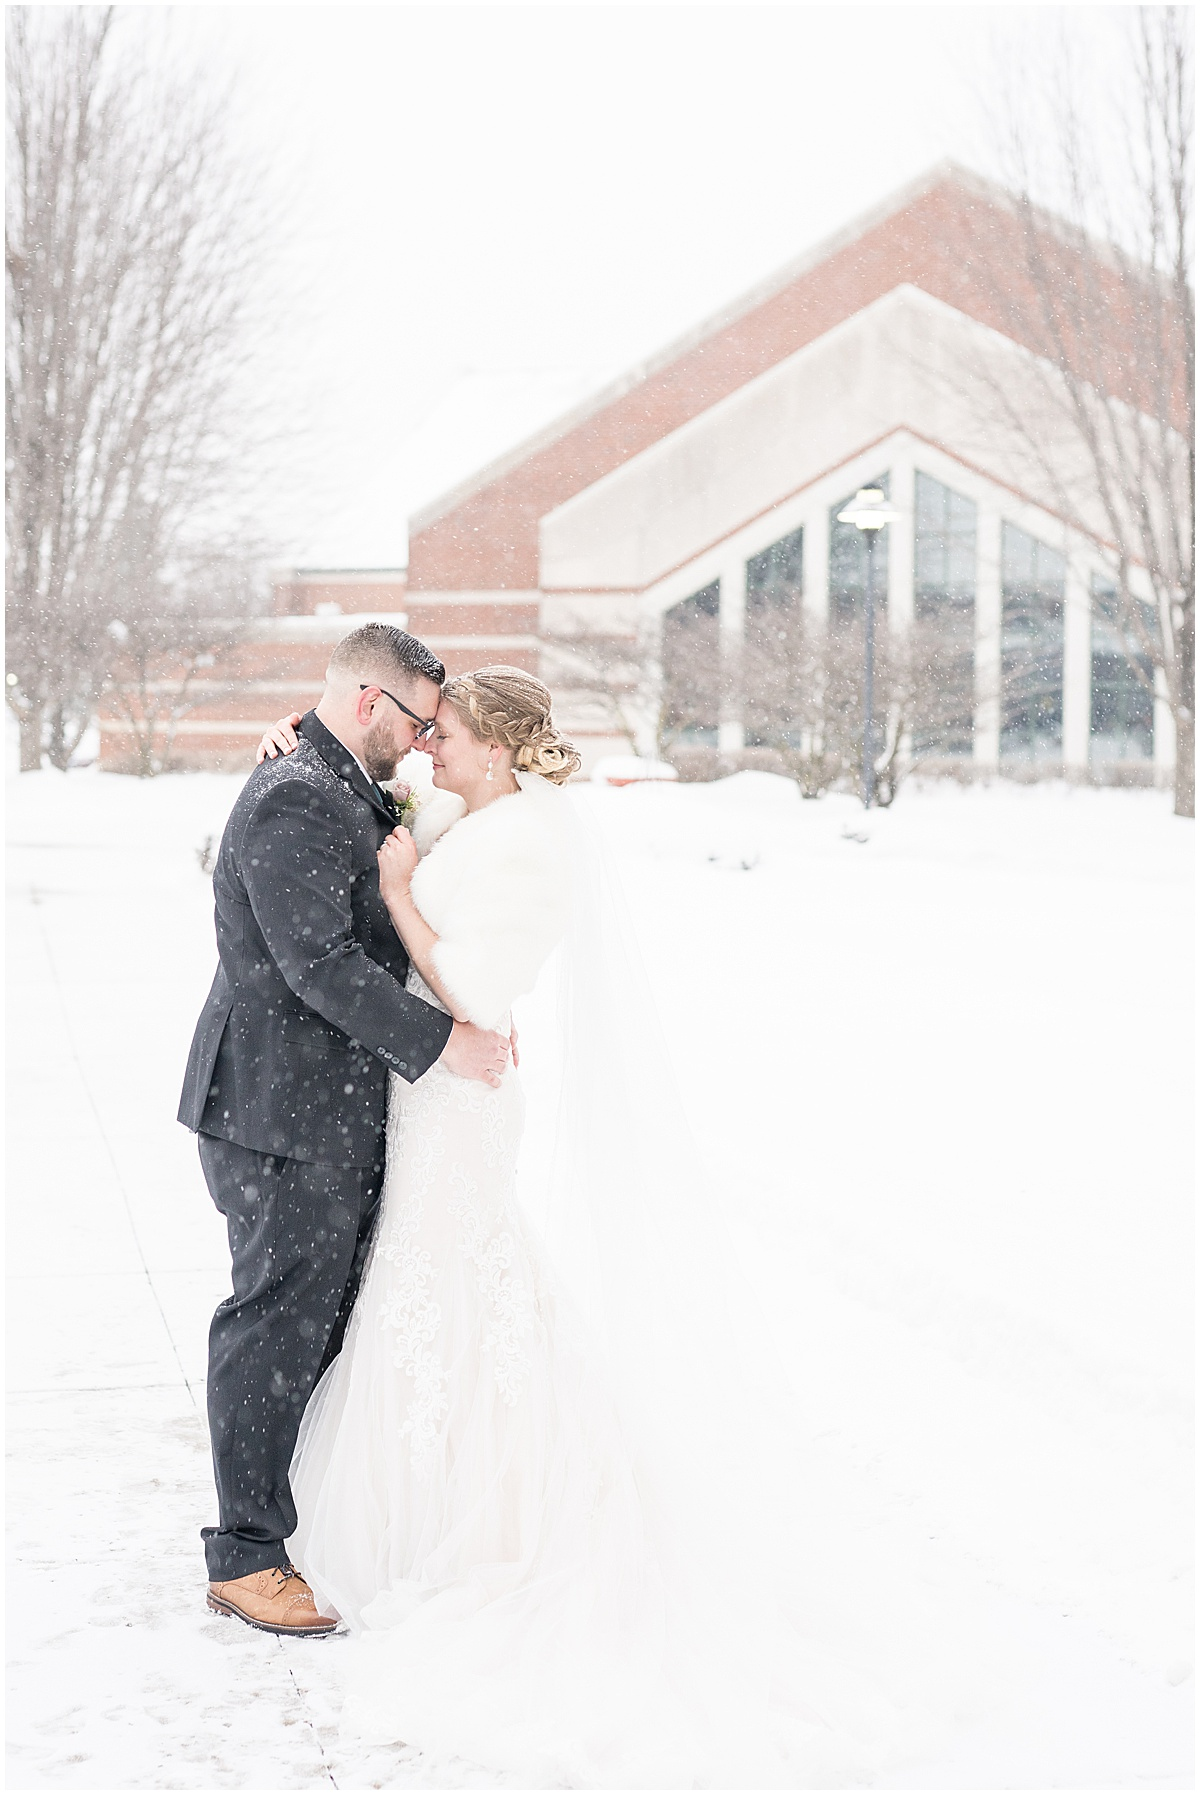 Wedding photos in the snow at Trinity Christian College in Chicago, Illinois